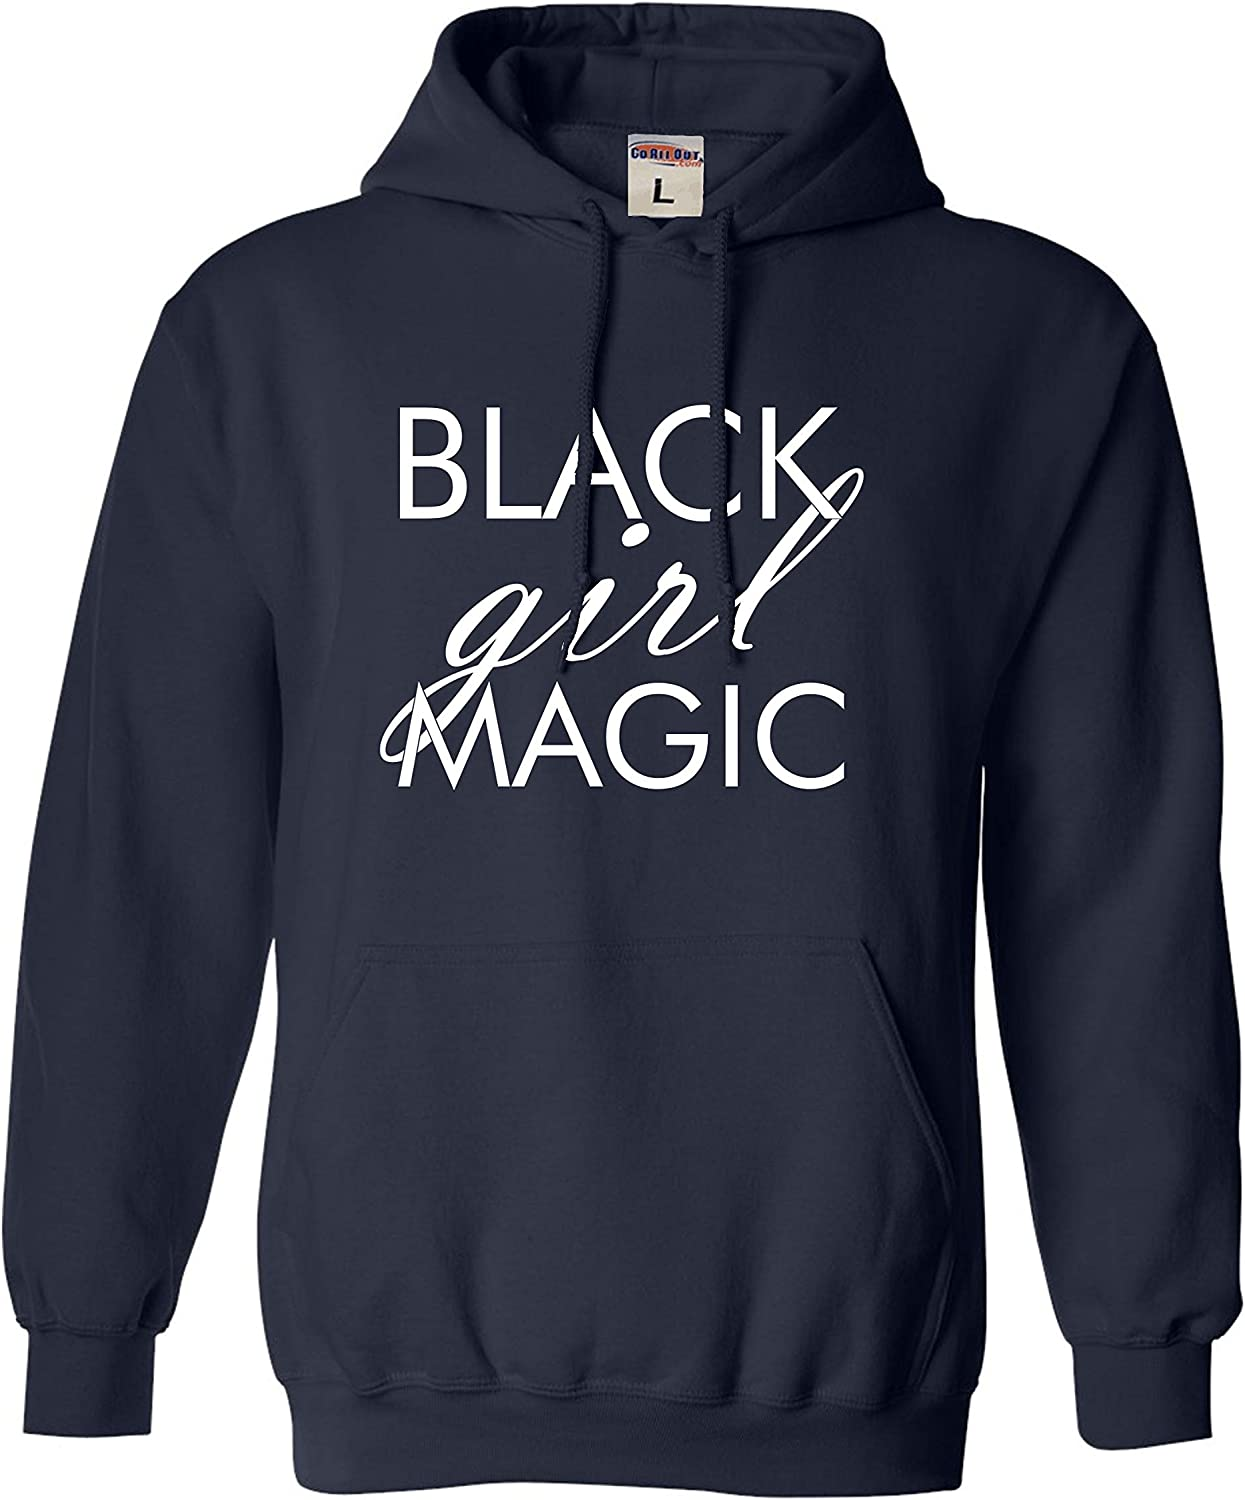 Go All Out Adult and Youth Sweatshirt Large special price !! Hoodie Chicago Mall Black Magic Girl